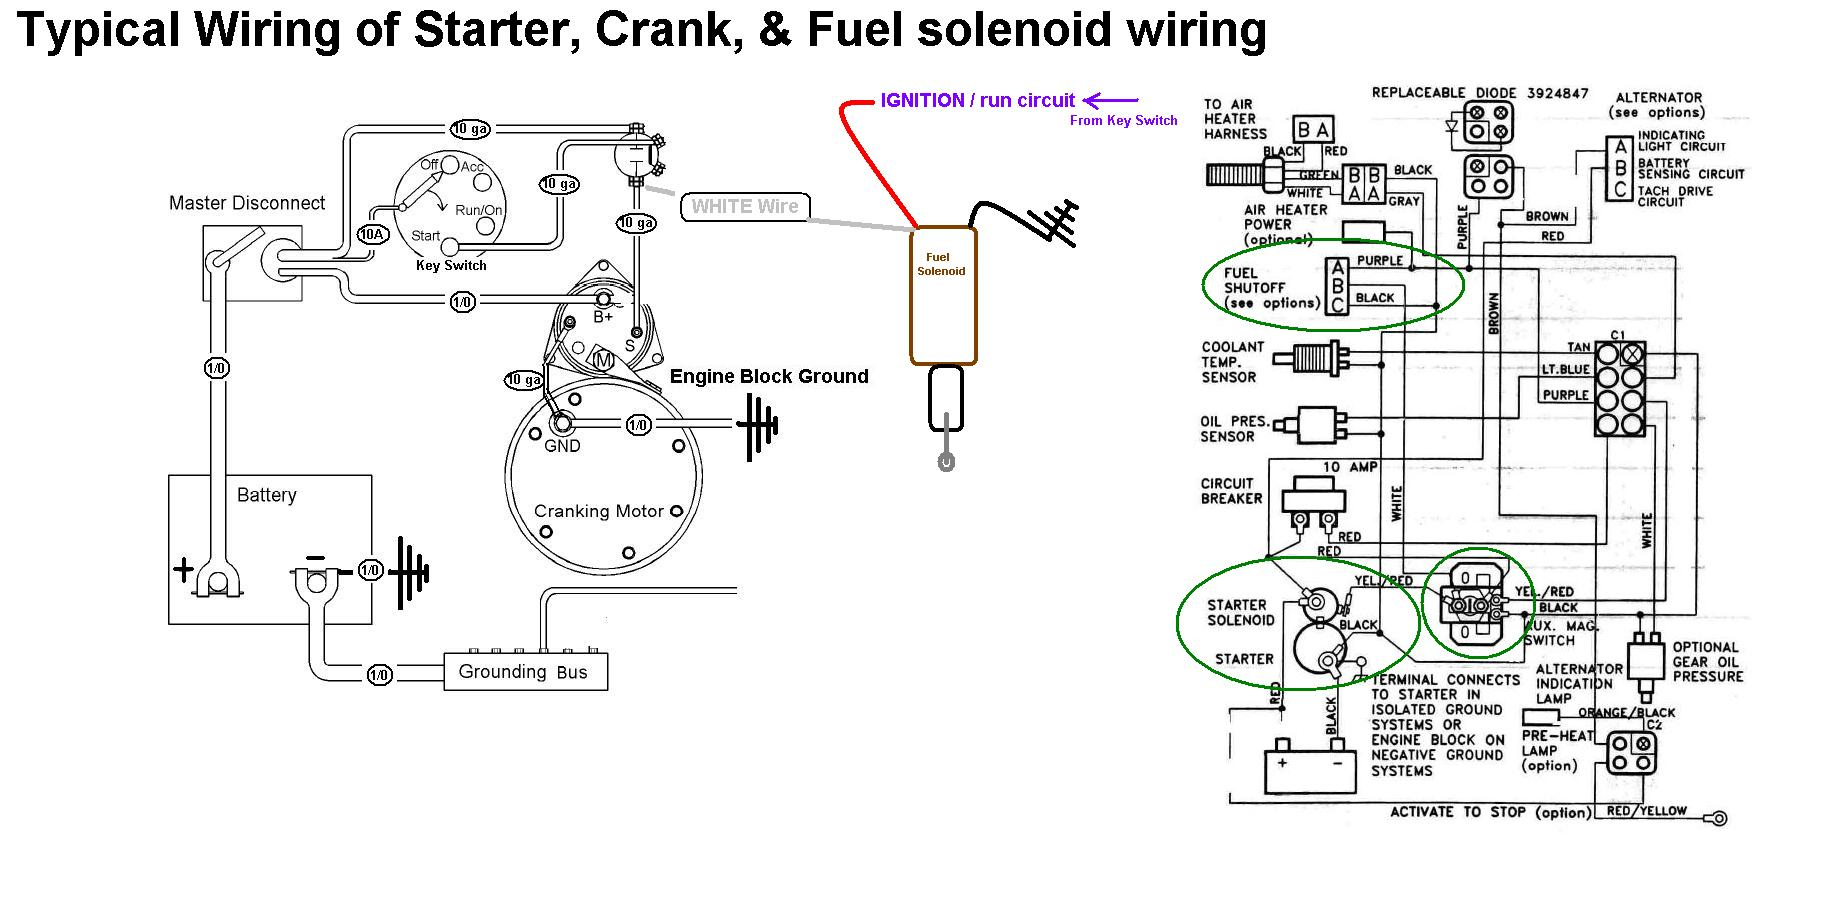 Caterpillar Solenoid Wiring Diagram